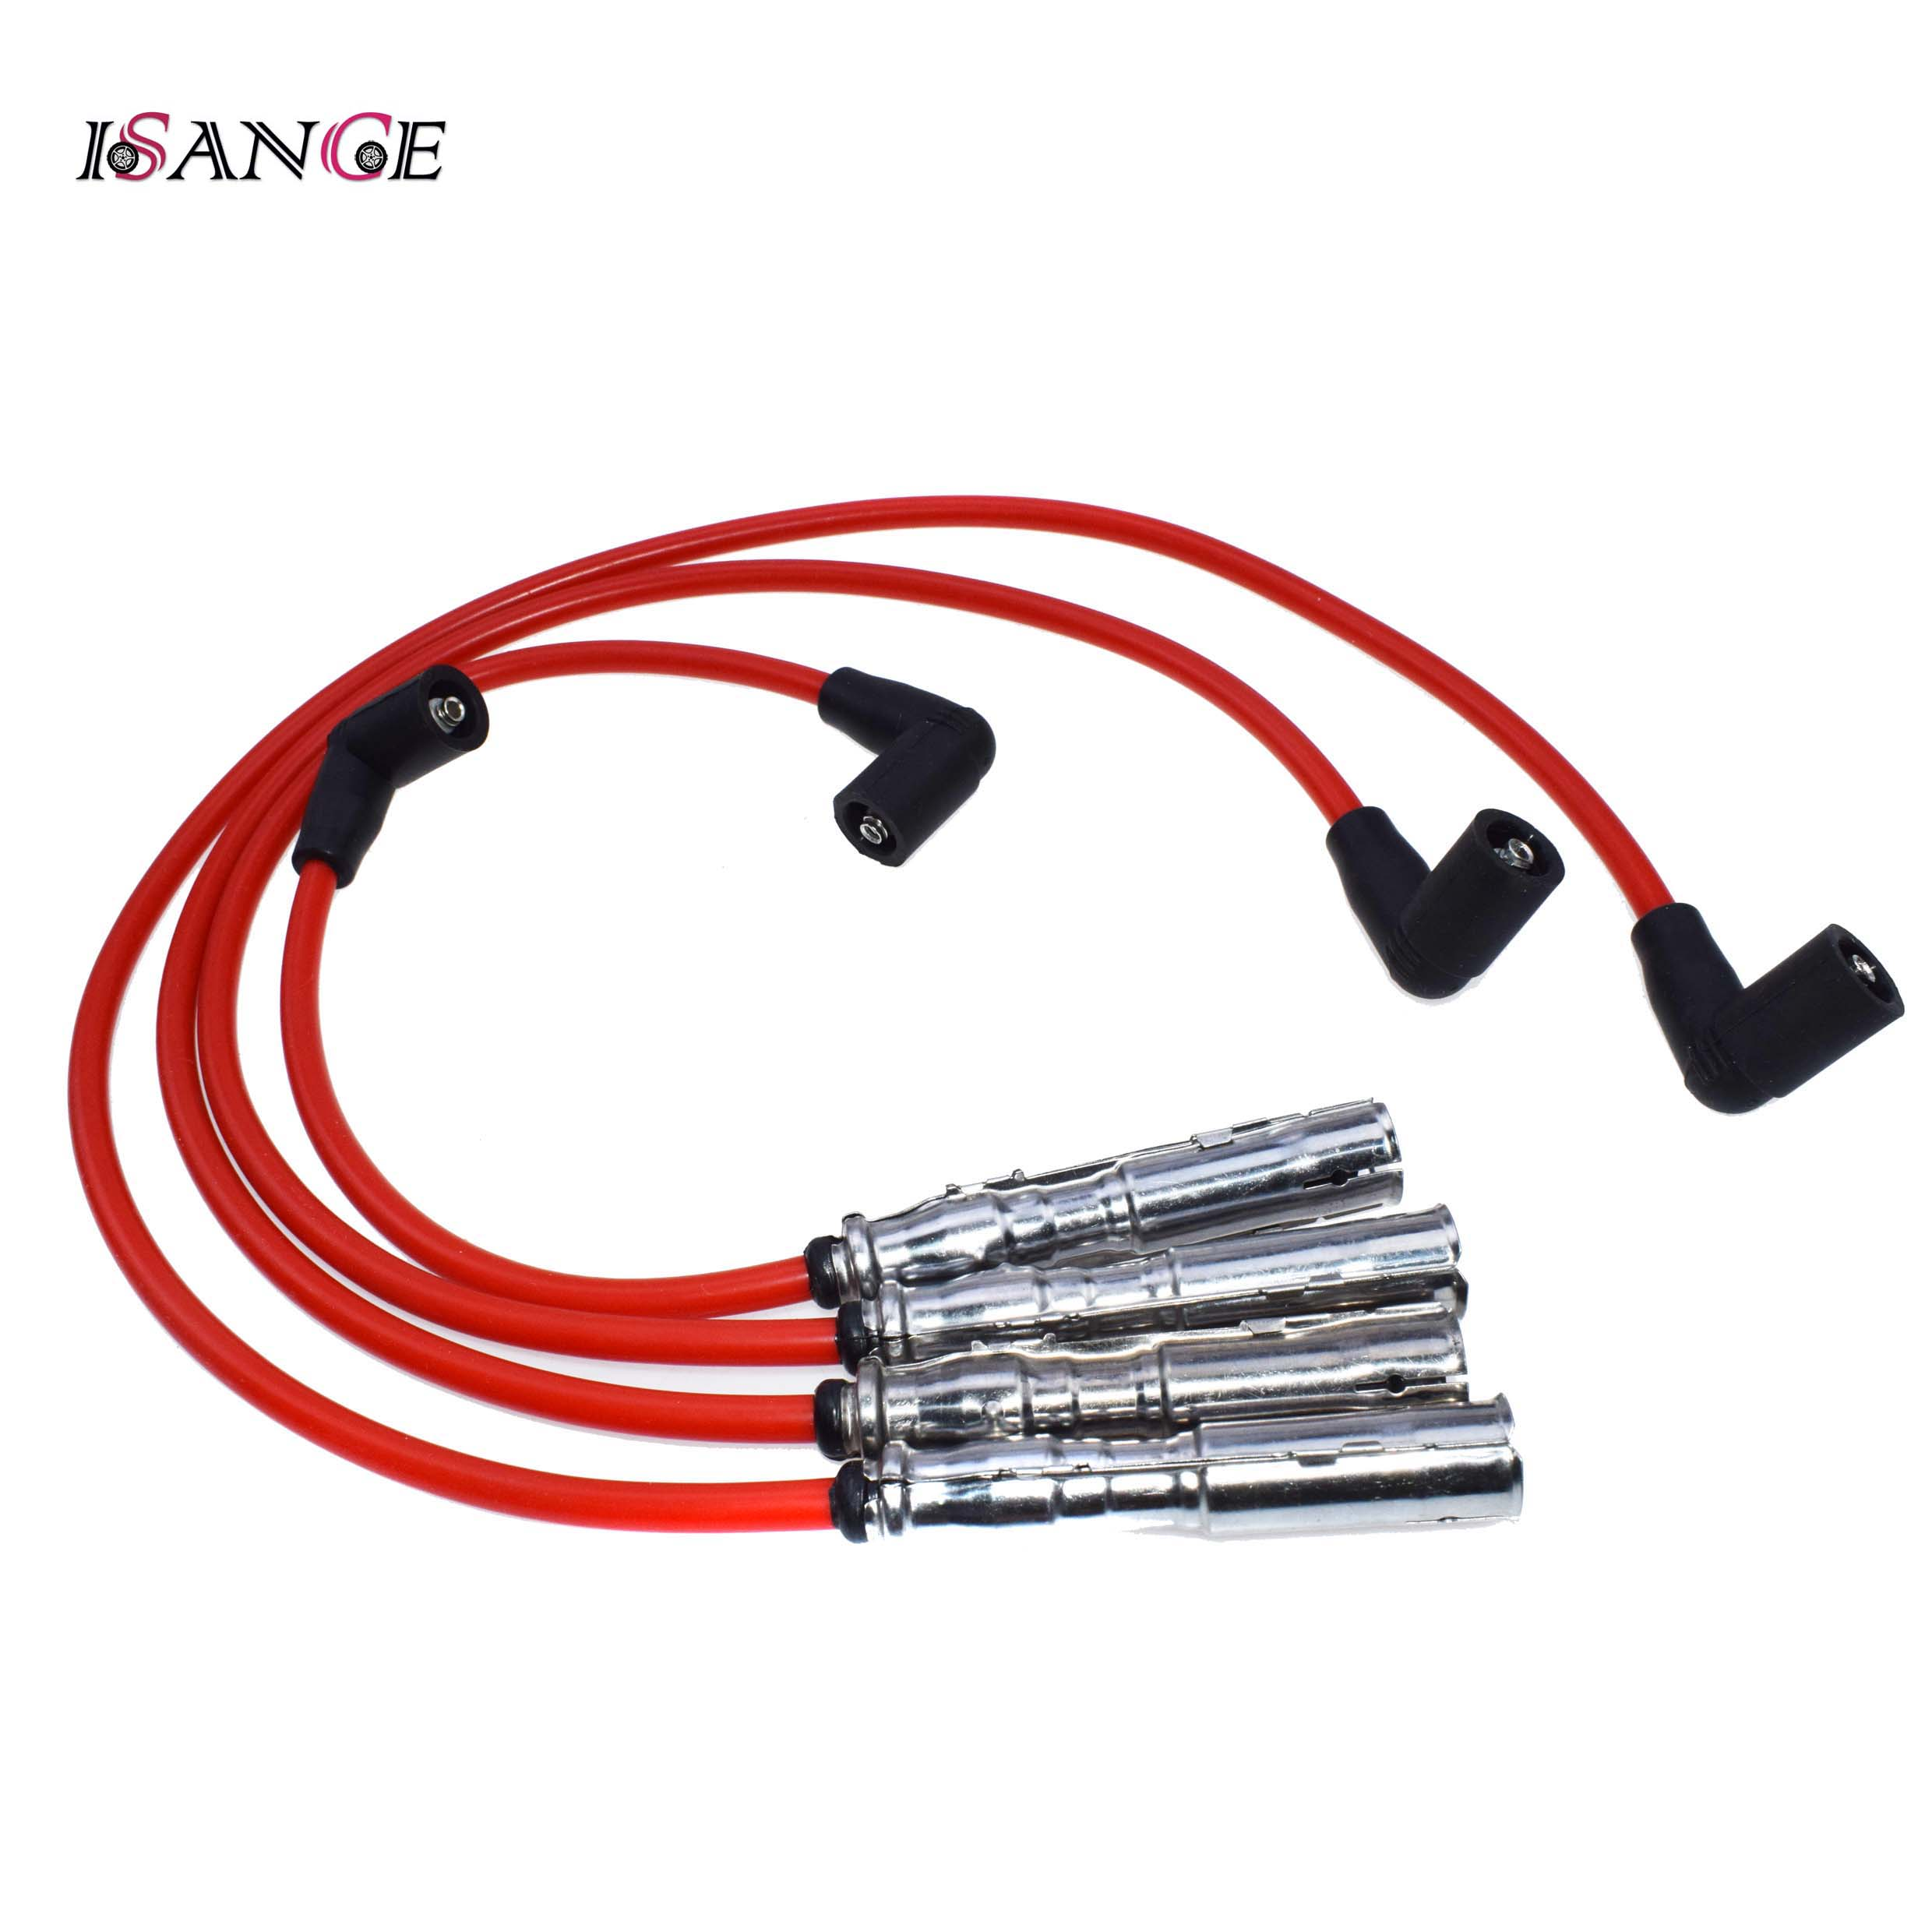 hight resolution of 1set oem ignition leads cables wires kit v6 2 4 2 8 for a4 a6 a8 passat superb 078 905 113 078 905 531 532 533 534 535 536 b